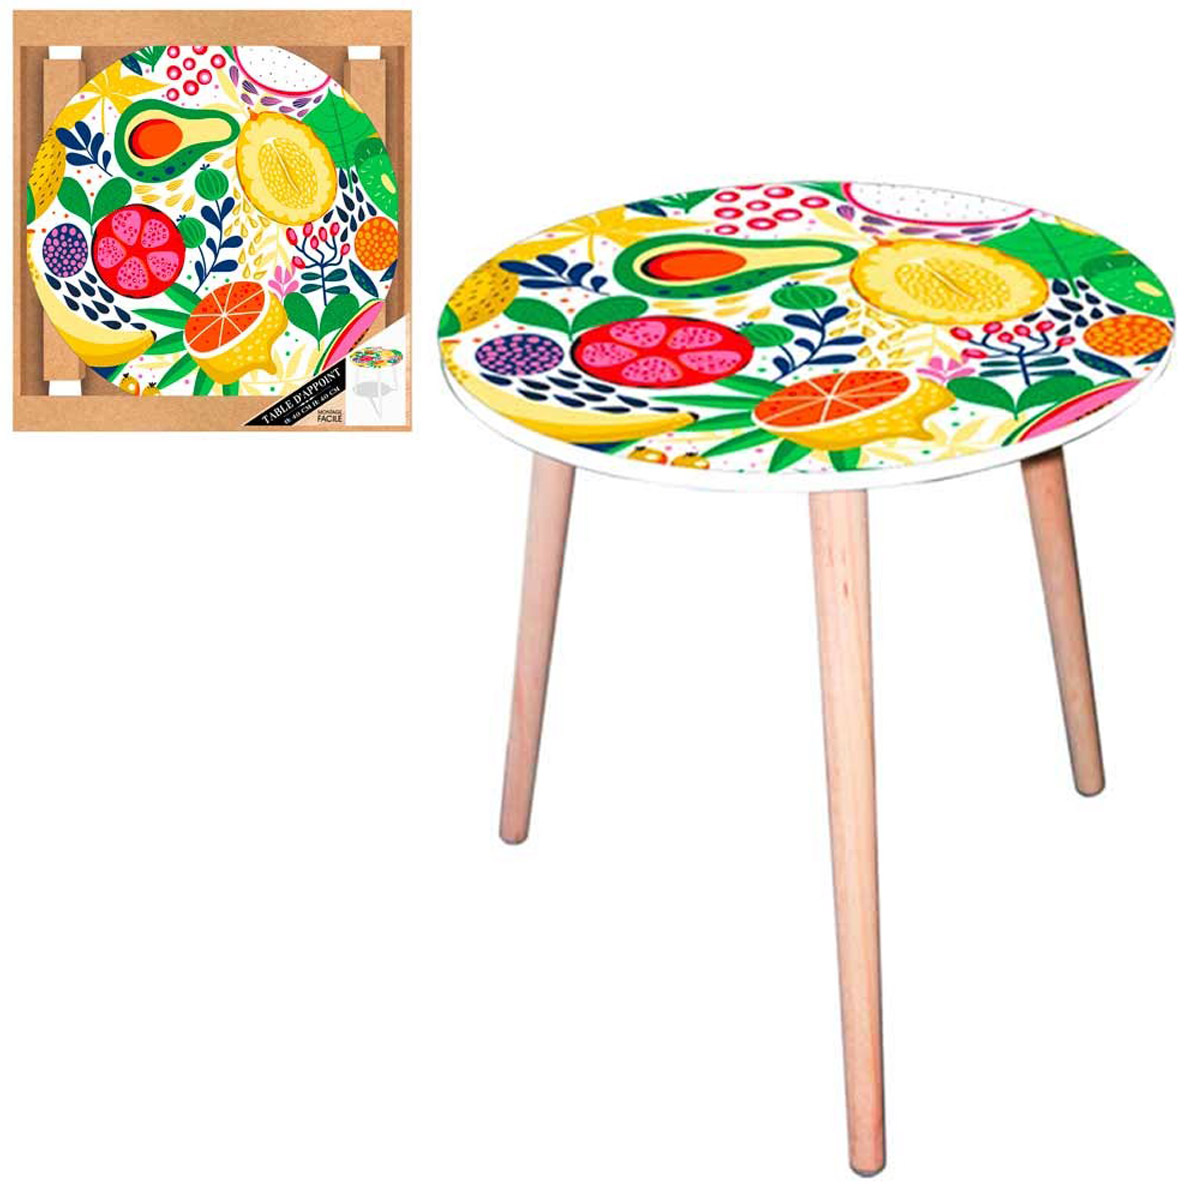 Table ronde résine \'Cocktail de Fruits\' multicolore - 40 cm - [Q5146]